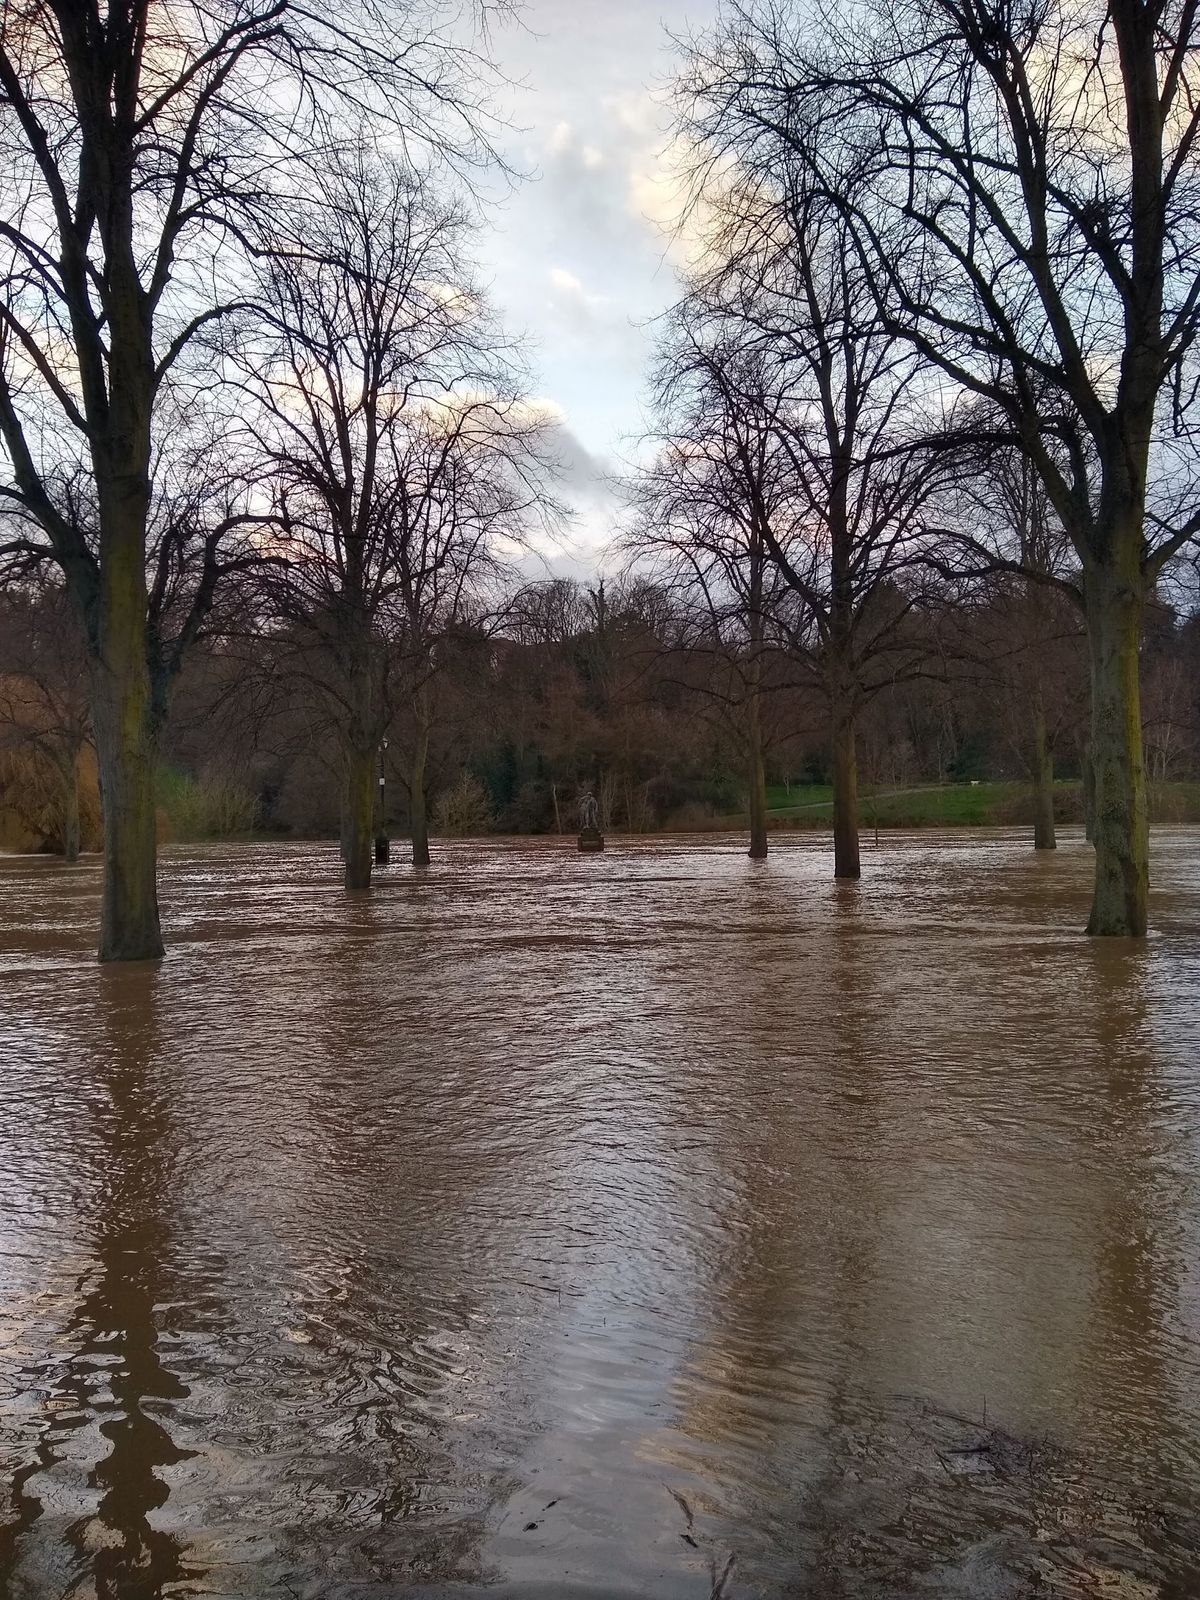 Flooding around Hercules in the Quarry Park